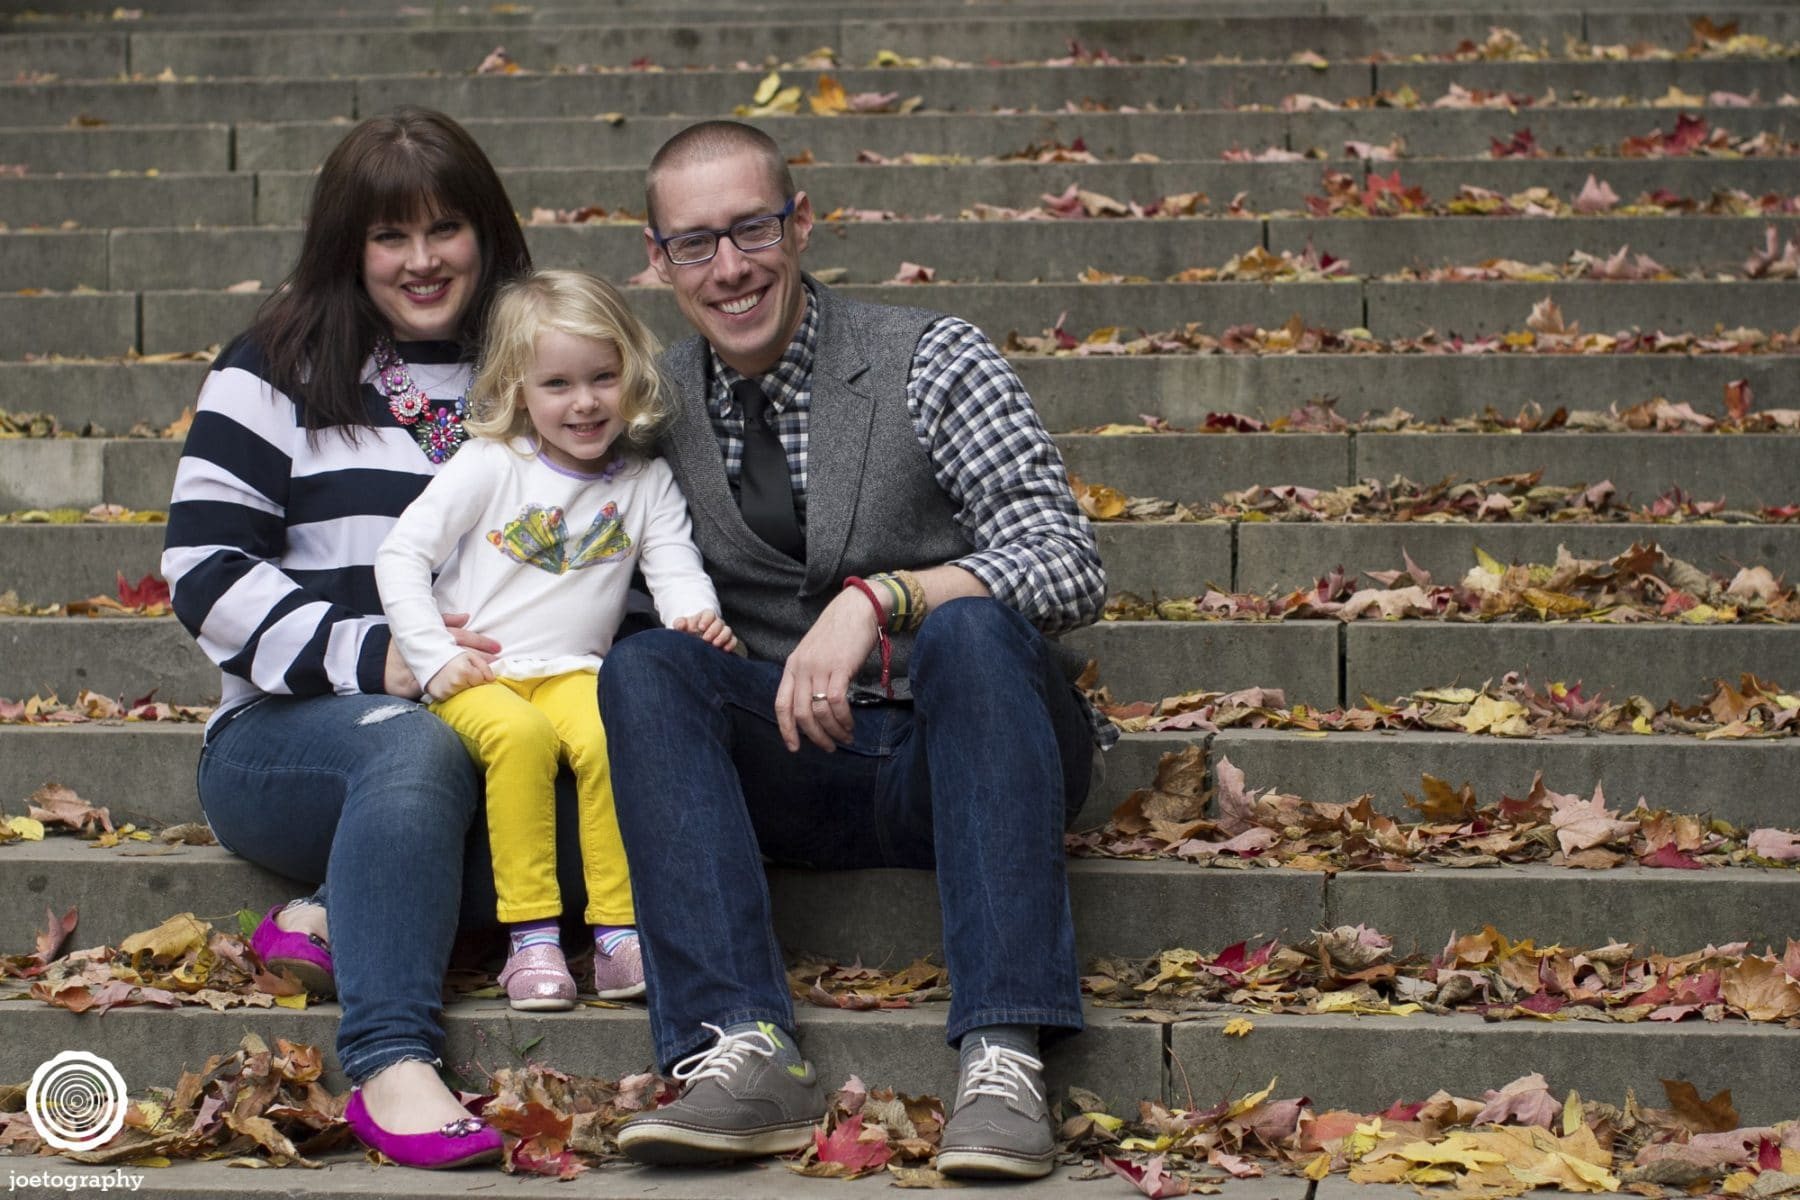 woestman-family-photographs-indianapolis-butler-university-1